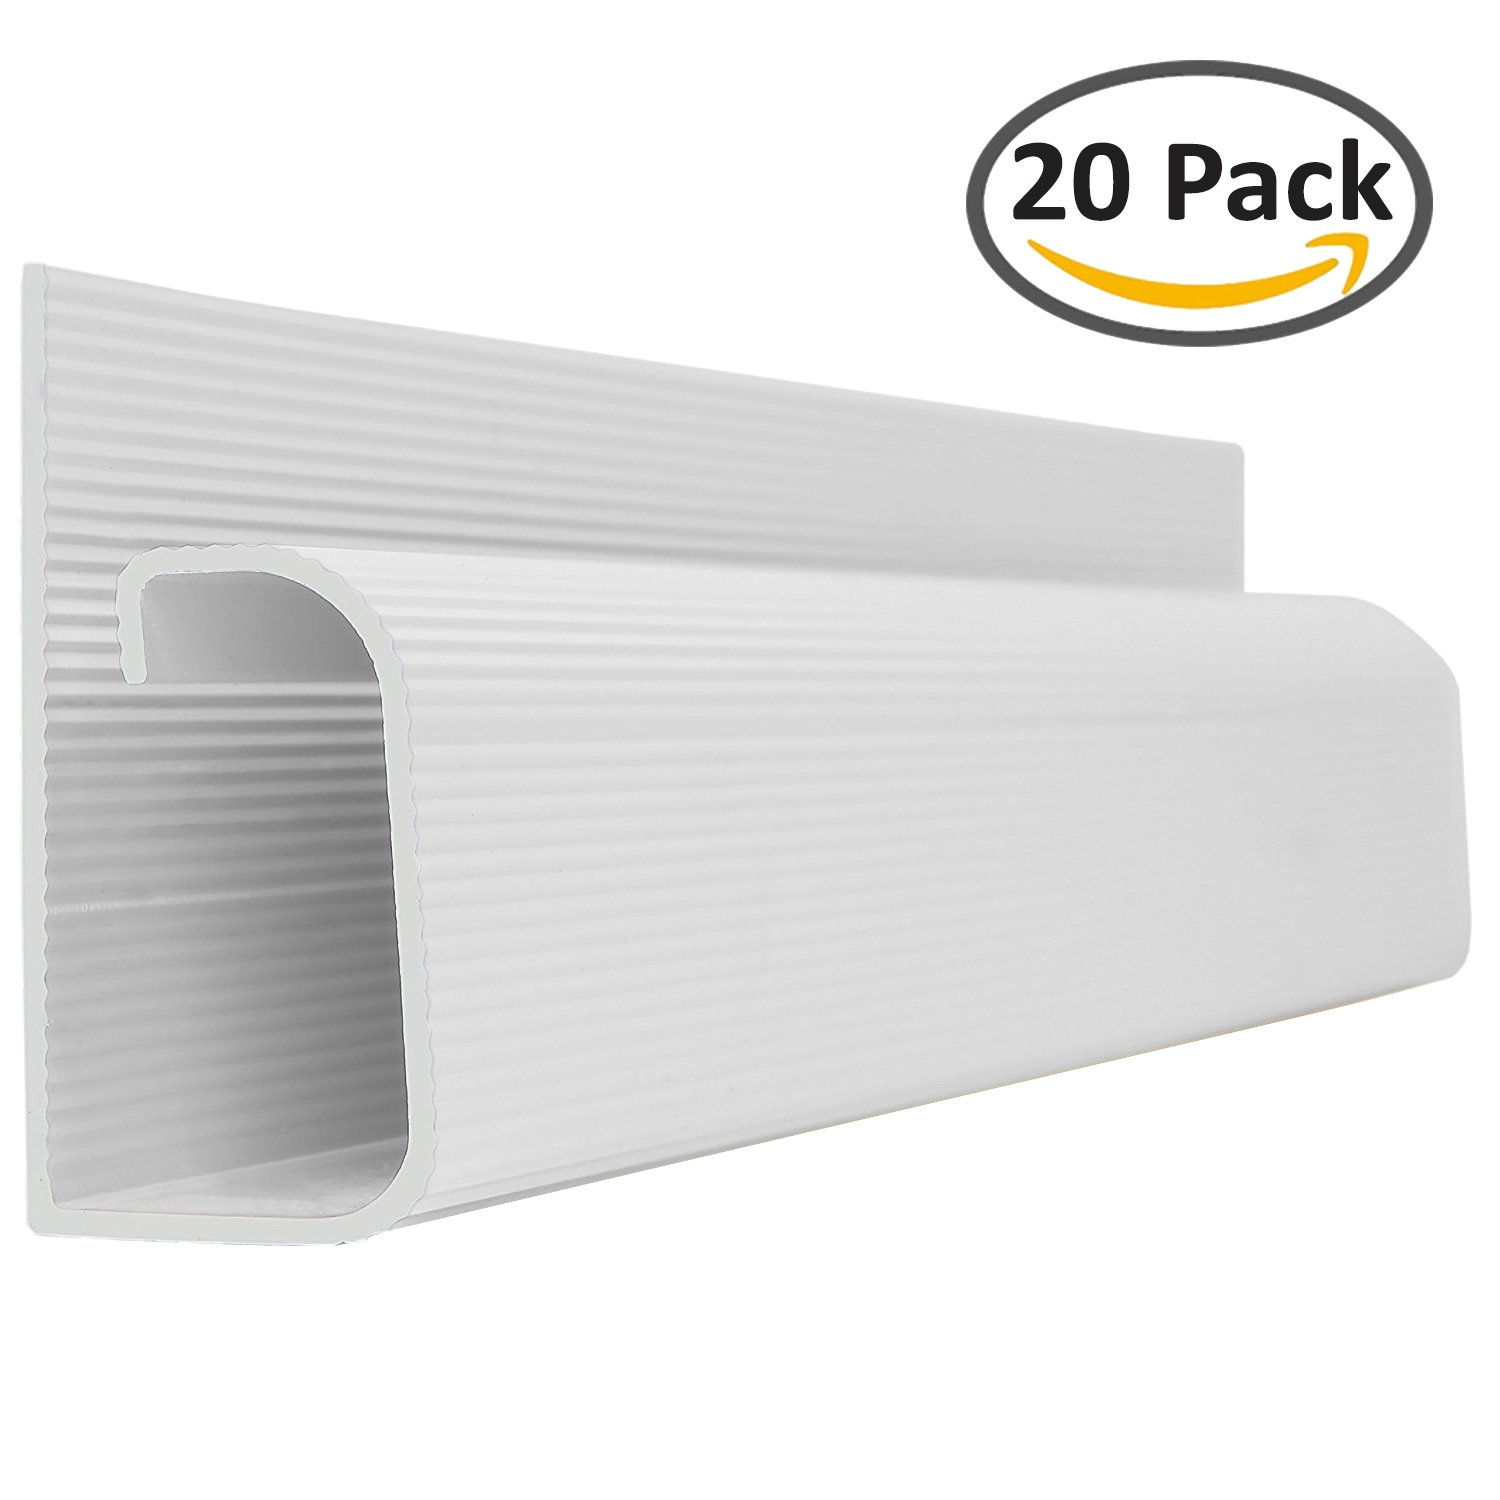 J Channel Cable Raceway - White - 48'' Length - 20 Pack